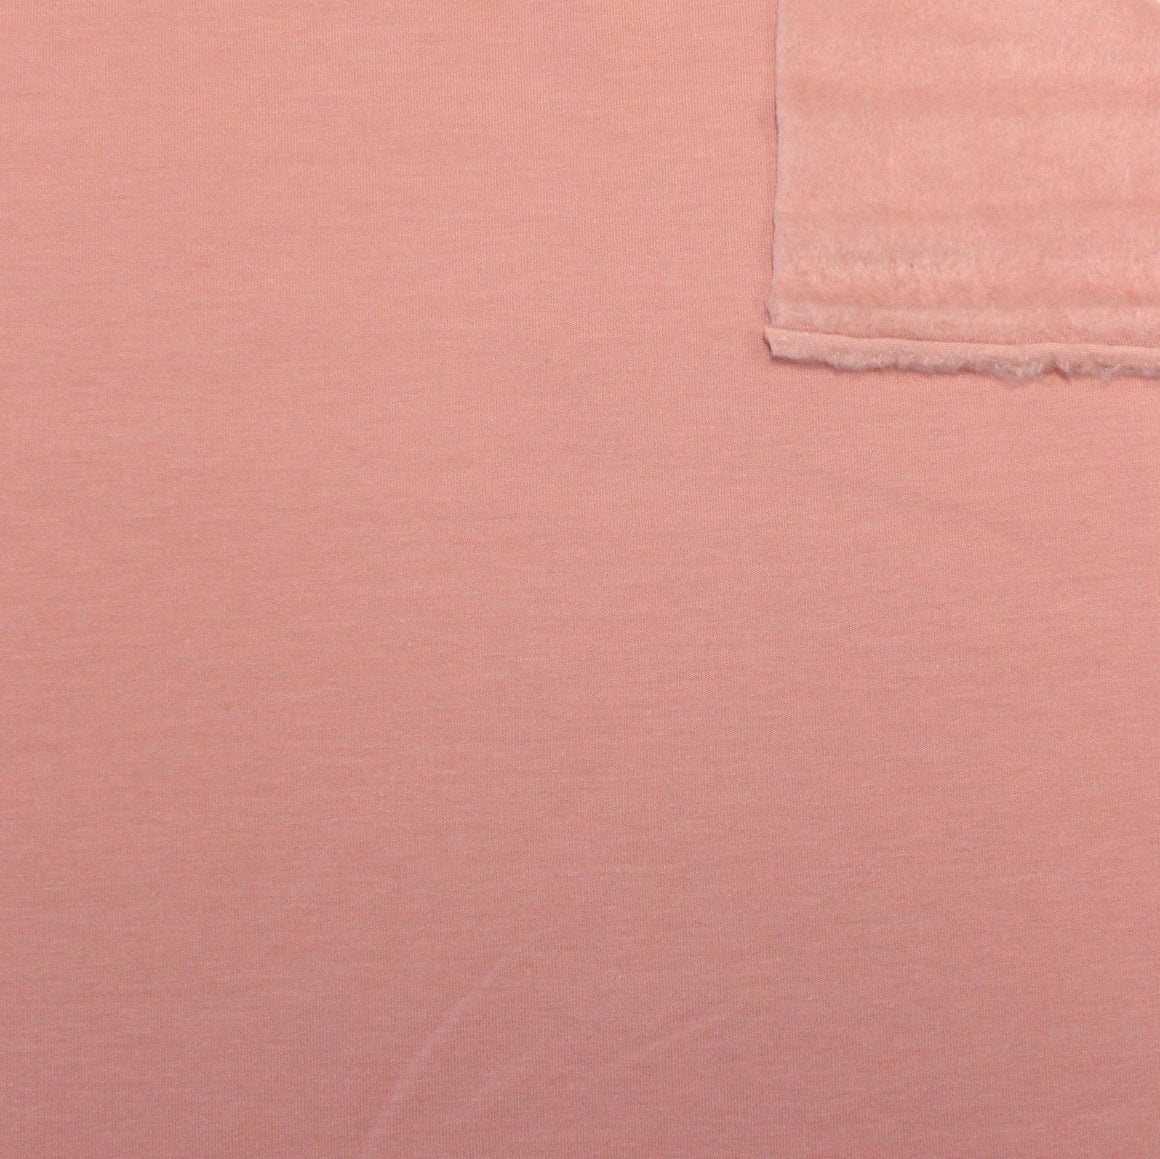 Solid Dusty Rose Lyocell Organic Cotton Spandex 4 Way Stretch Sweatshirt Fleece, 1 Yard